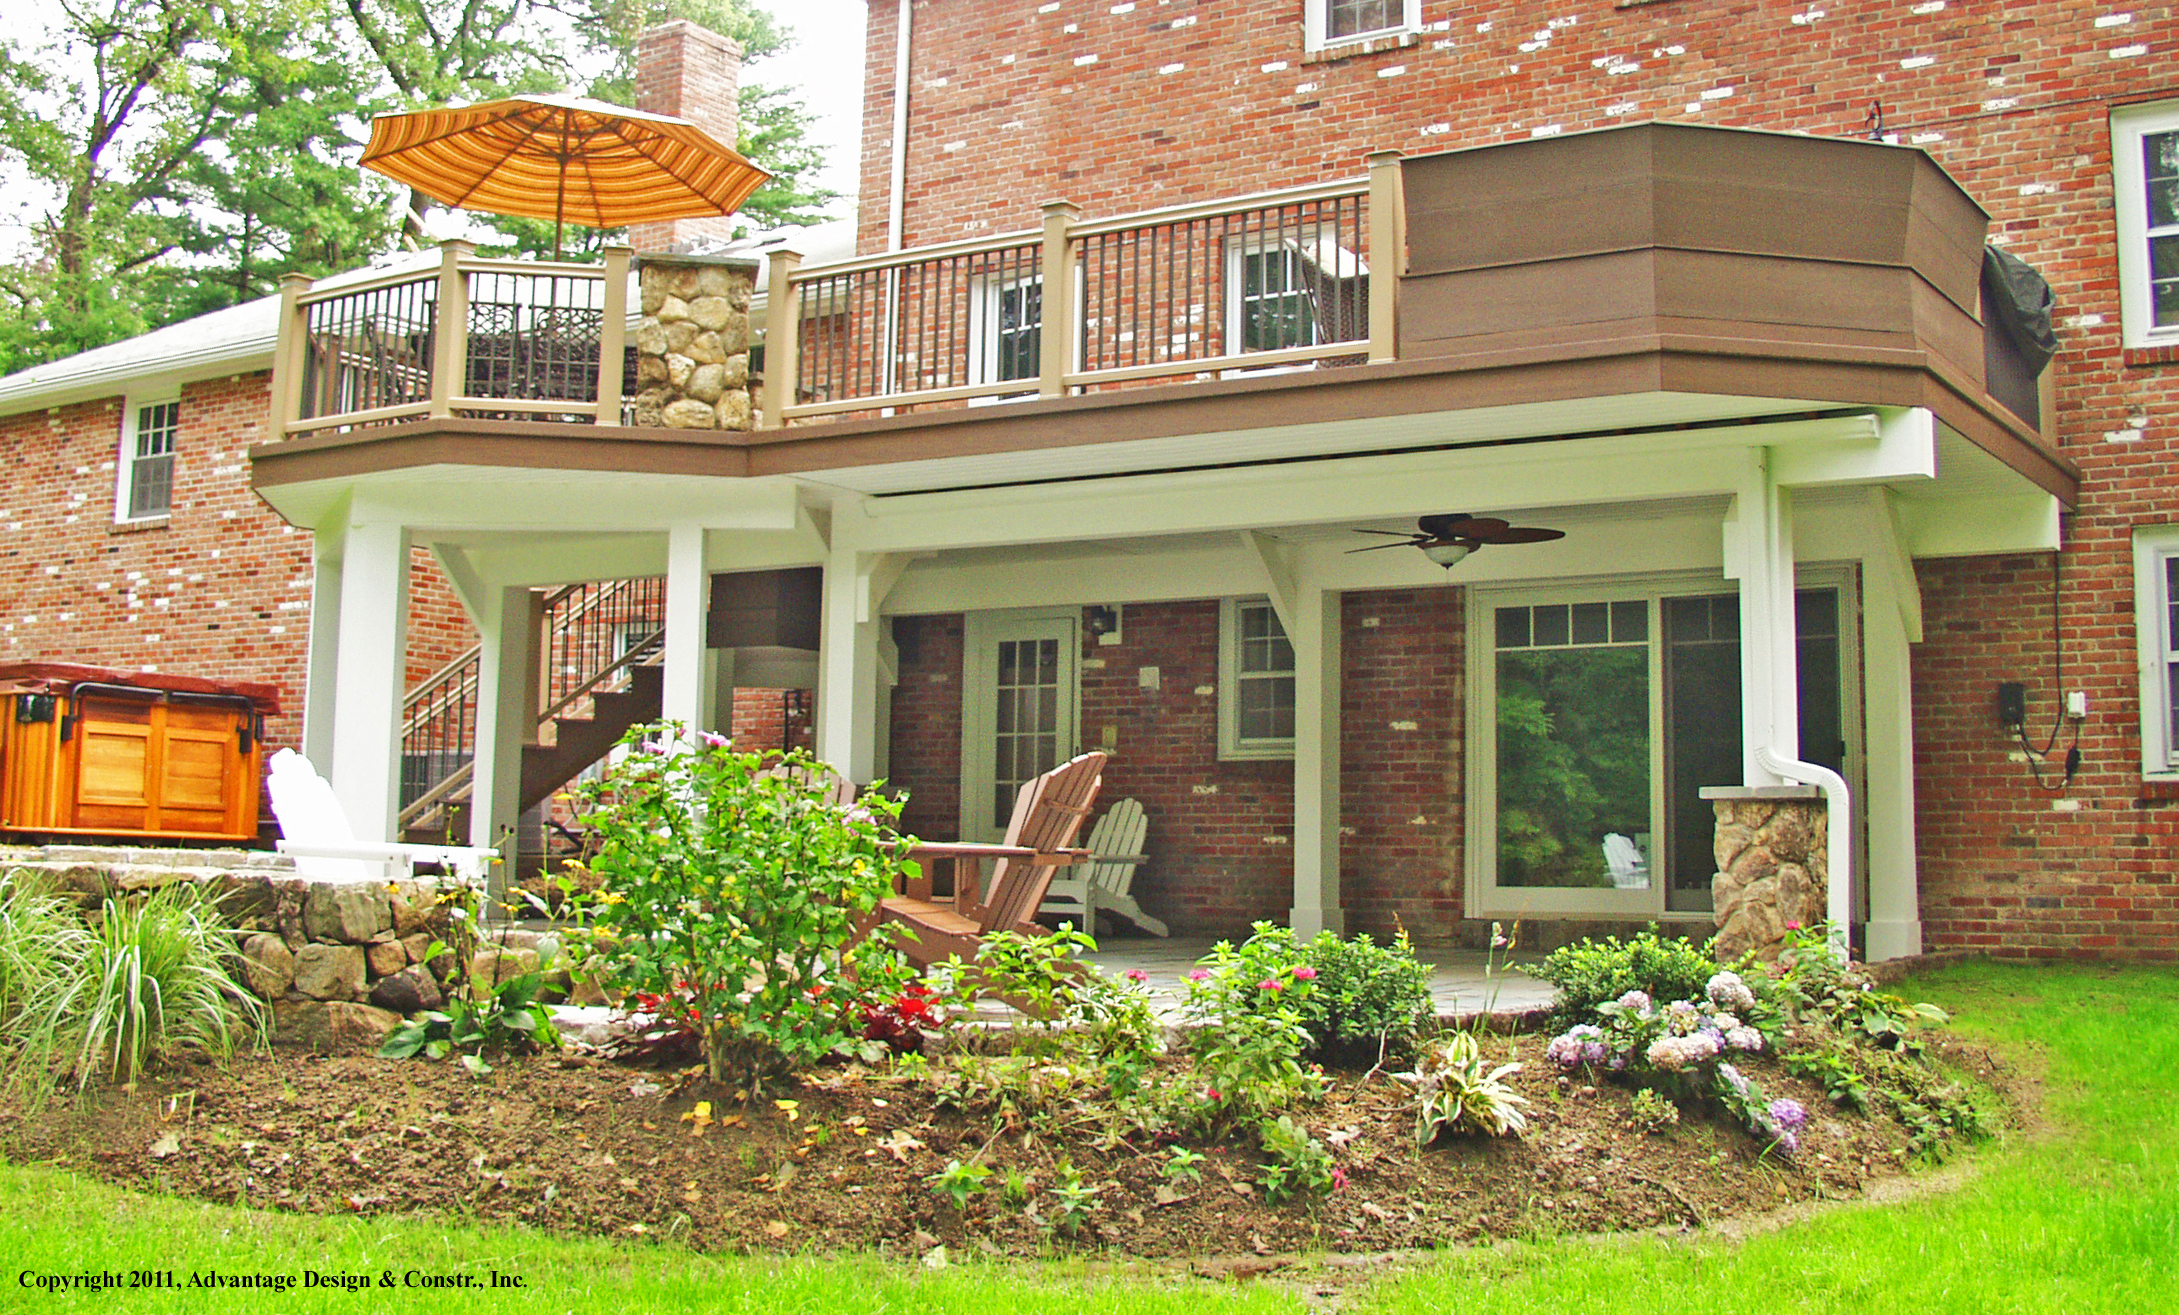 What Is A Freestanding Deck And Why Would You Want One Suburban Boston Decks And Porches Blog